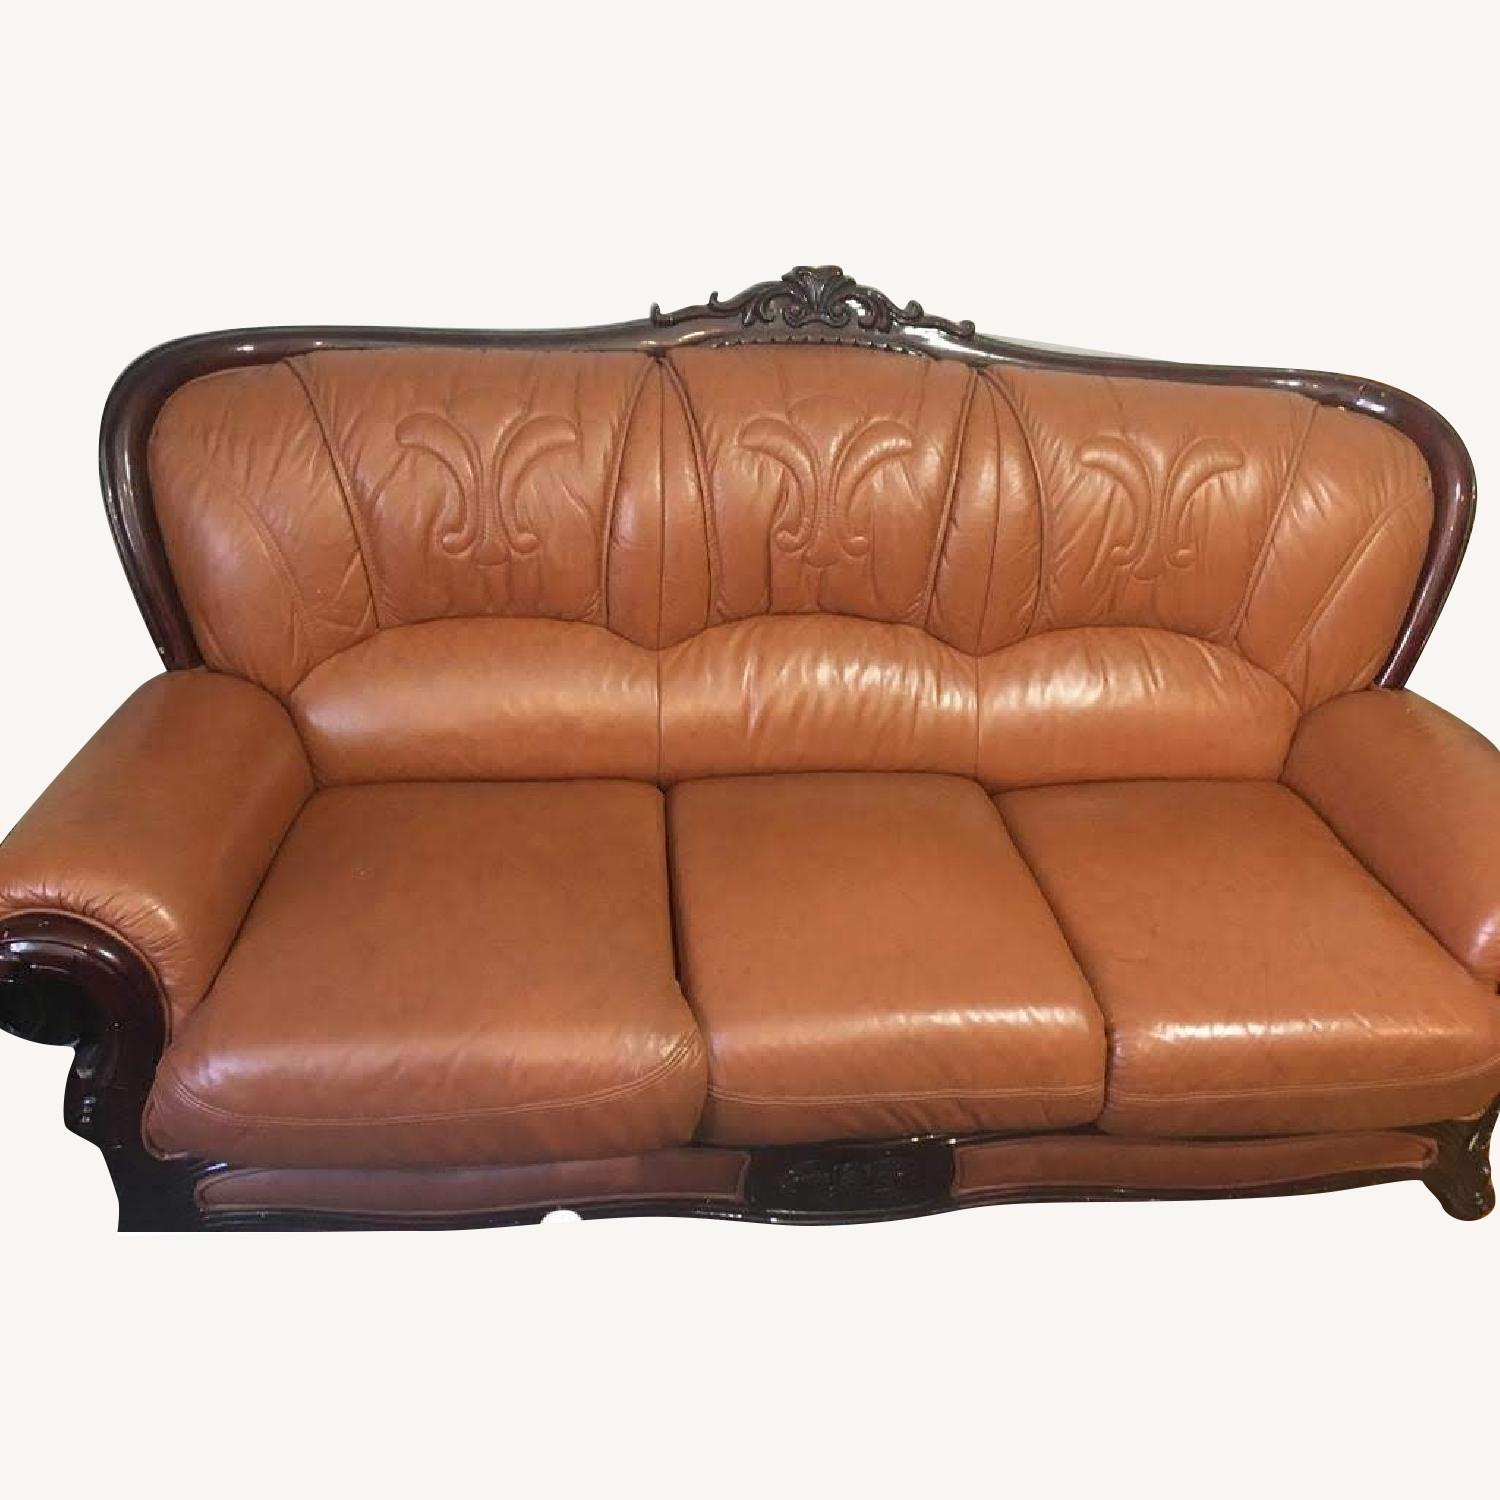 Leather Upholstered 3 Seater Sofa - image-0